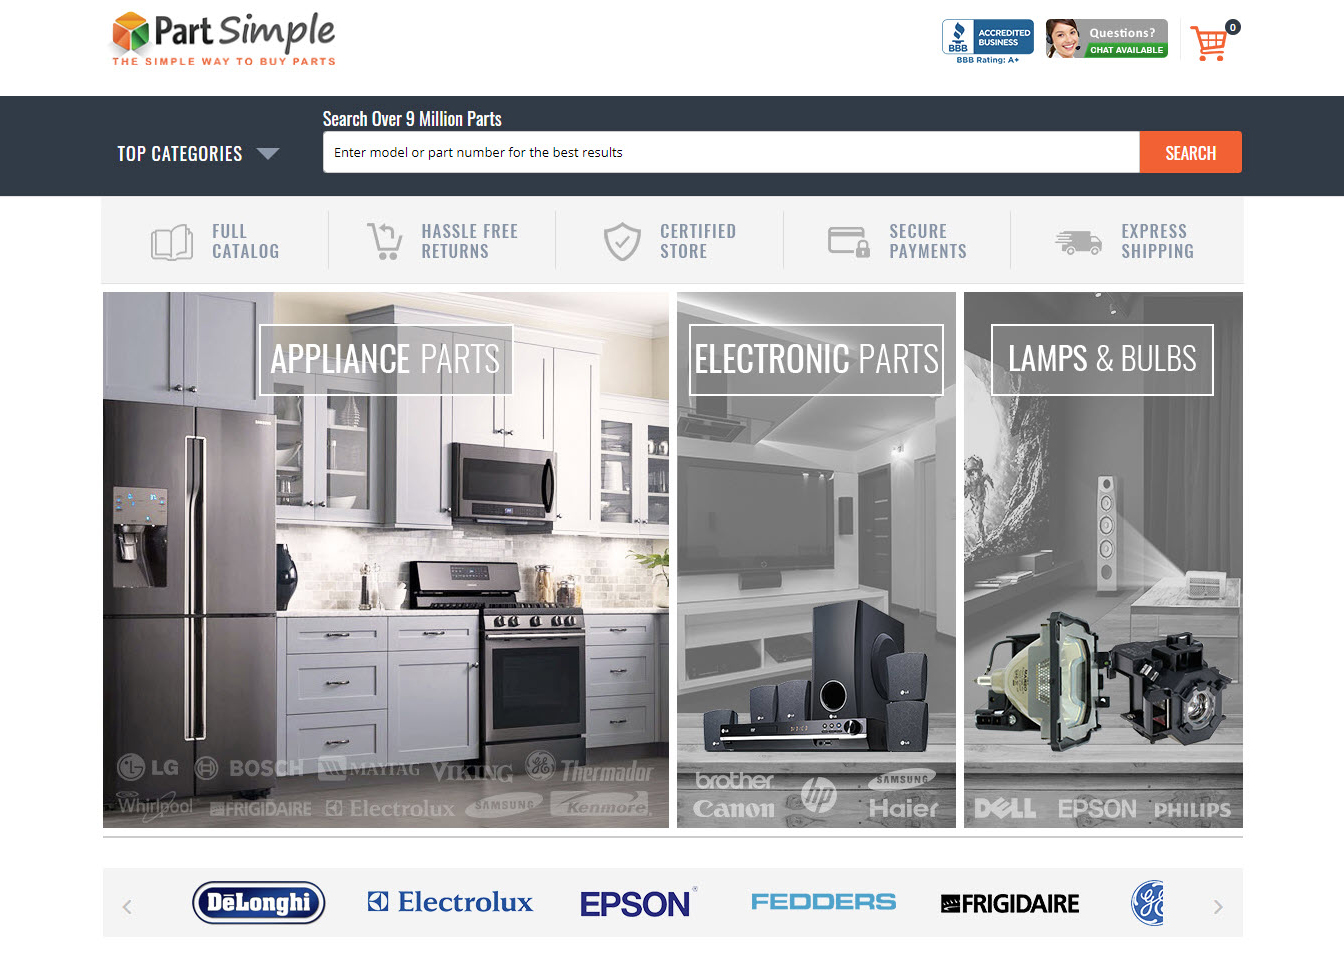 www.partsimple.com Home Page